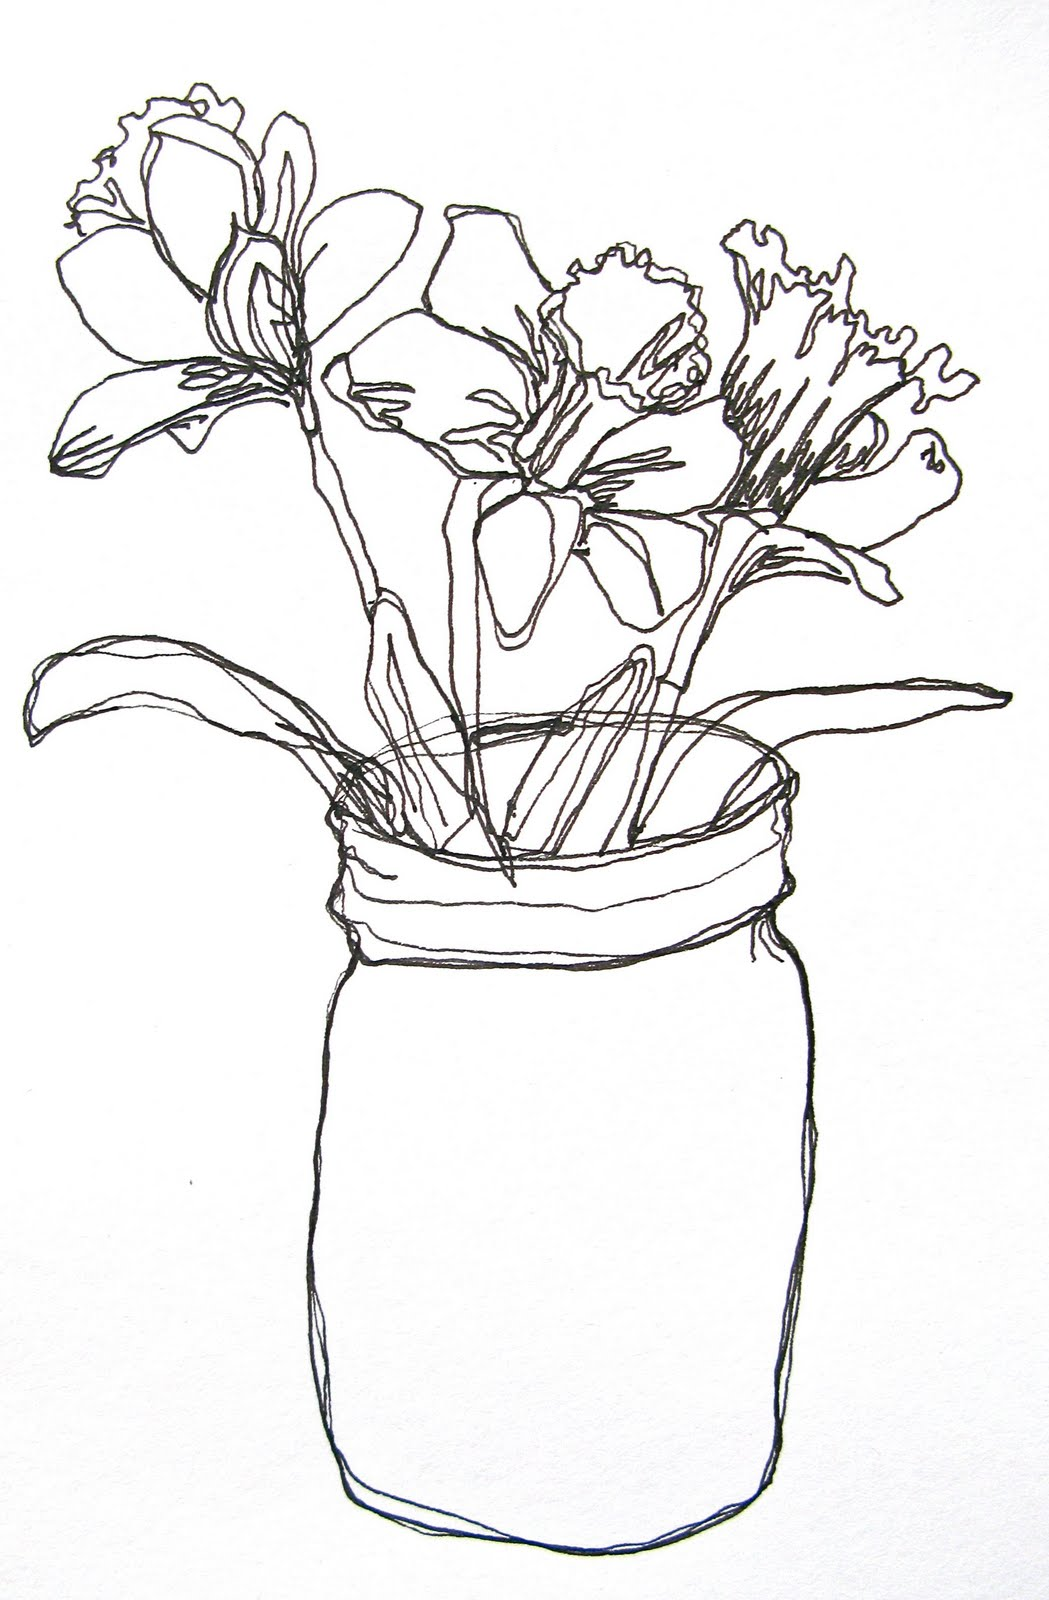 Line Drawing Flower Images : Corrieberry pie flower doodles